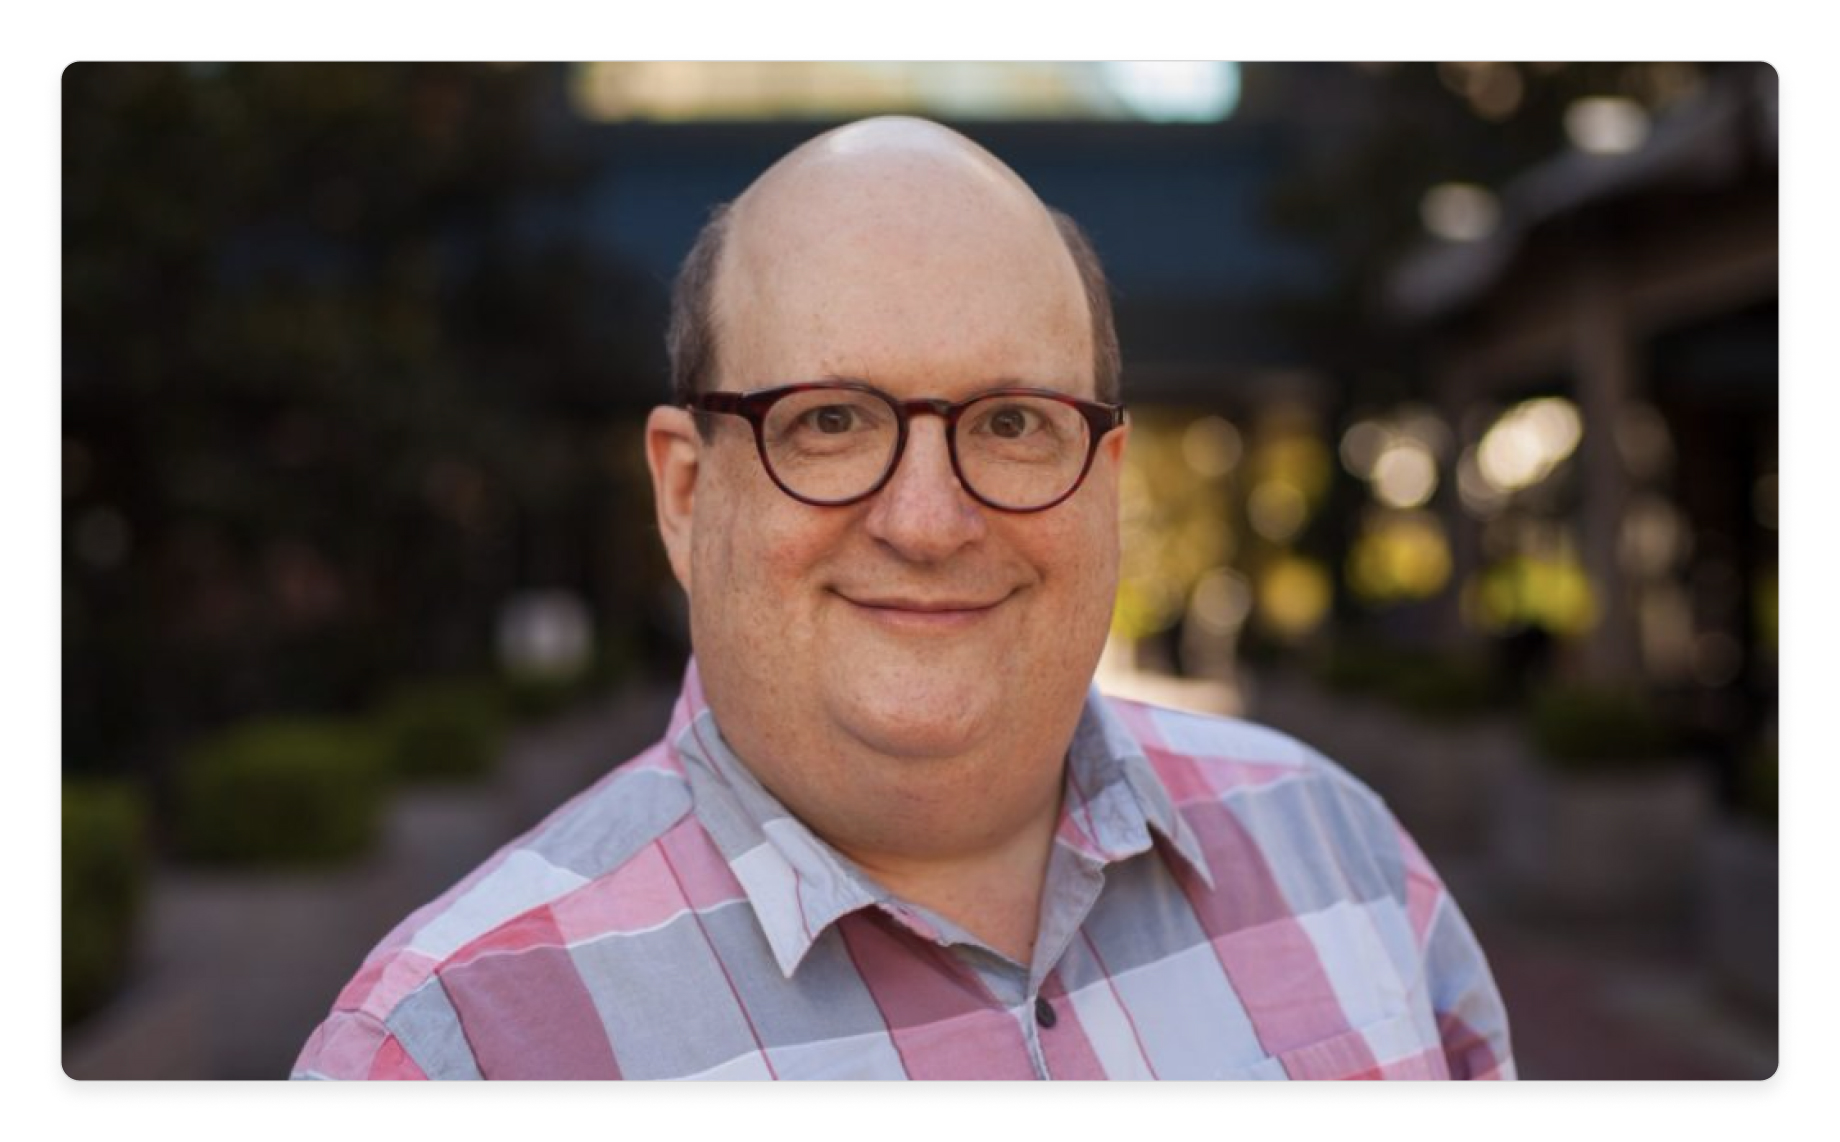 5 design influencers you need to know - Jared Spool